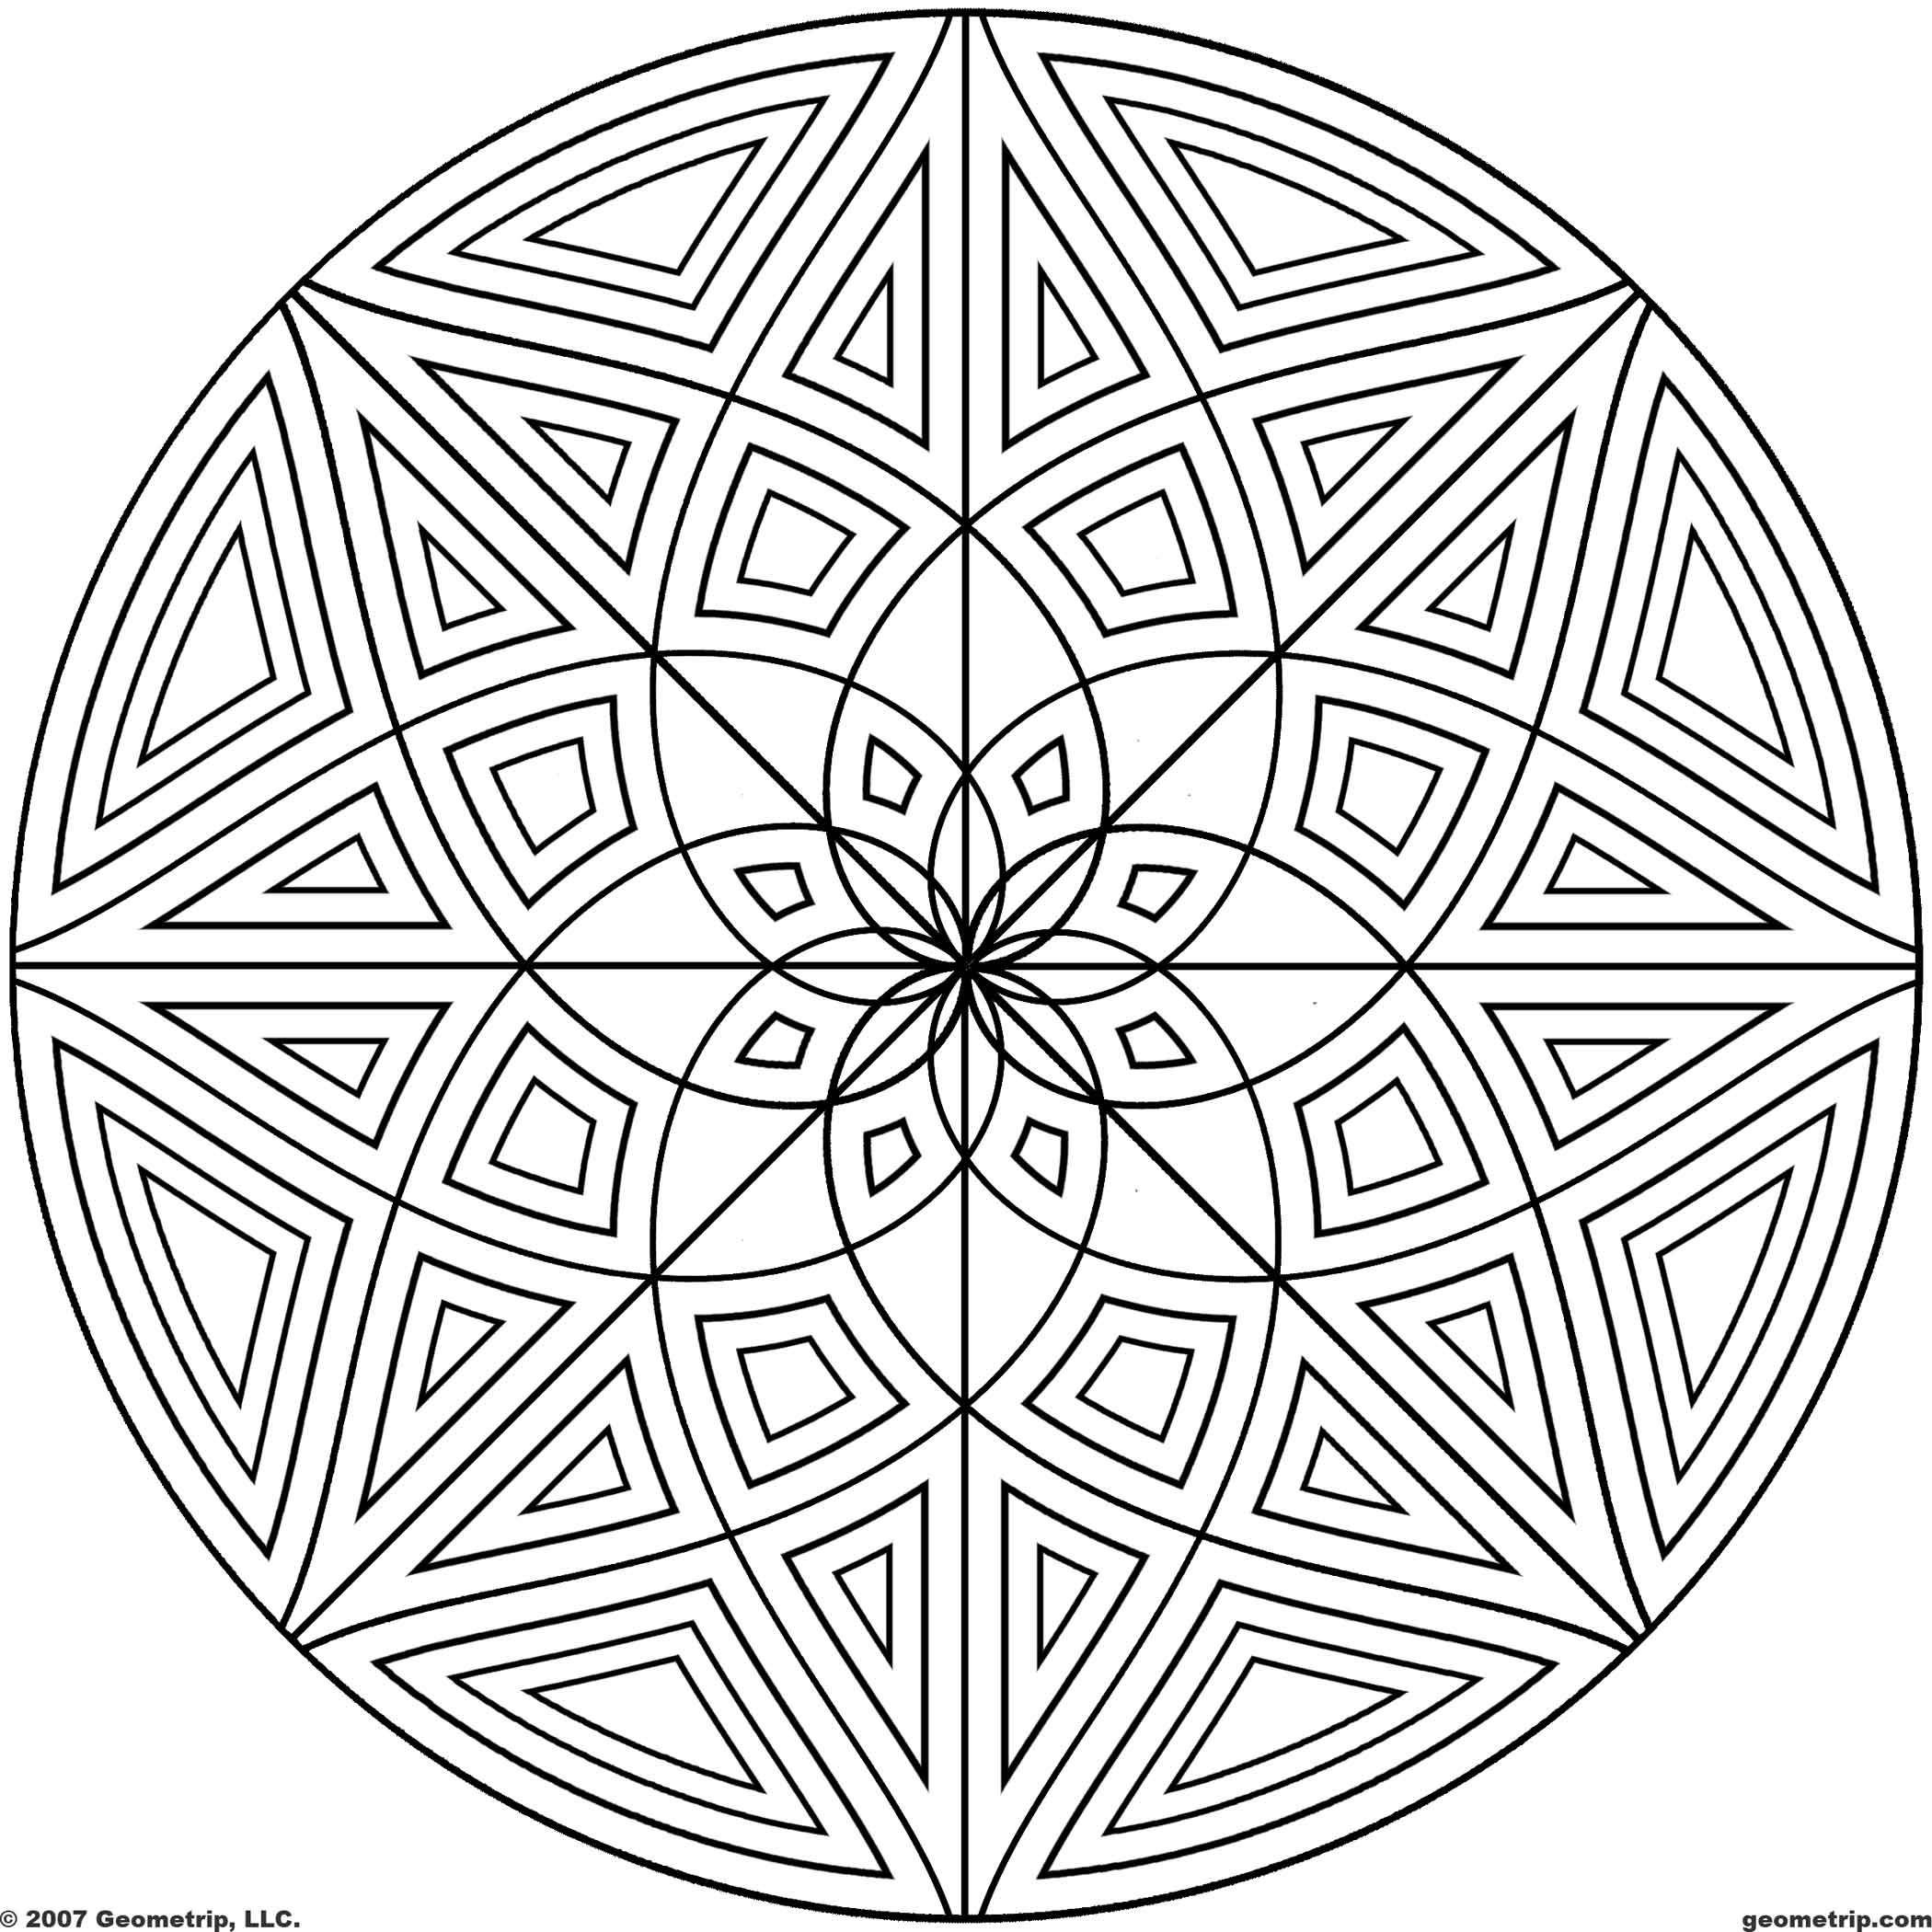 cool designs to color in coloring pages of cool designs coloring home in color to cool designs